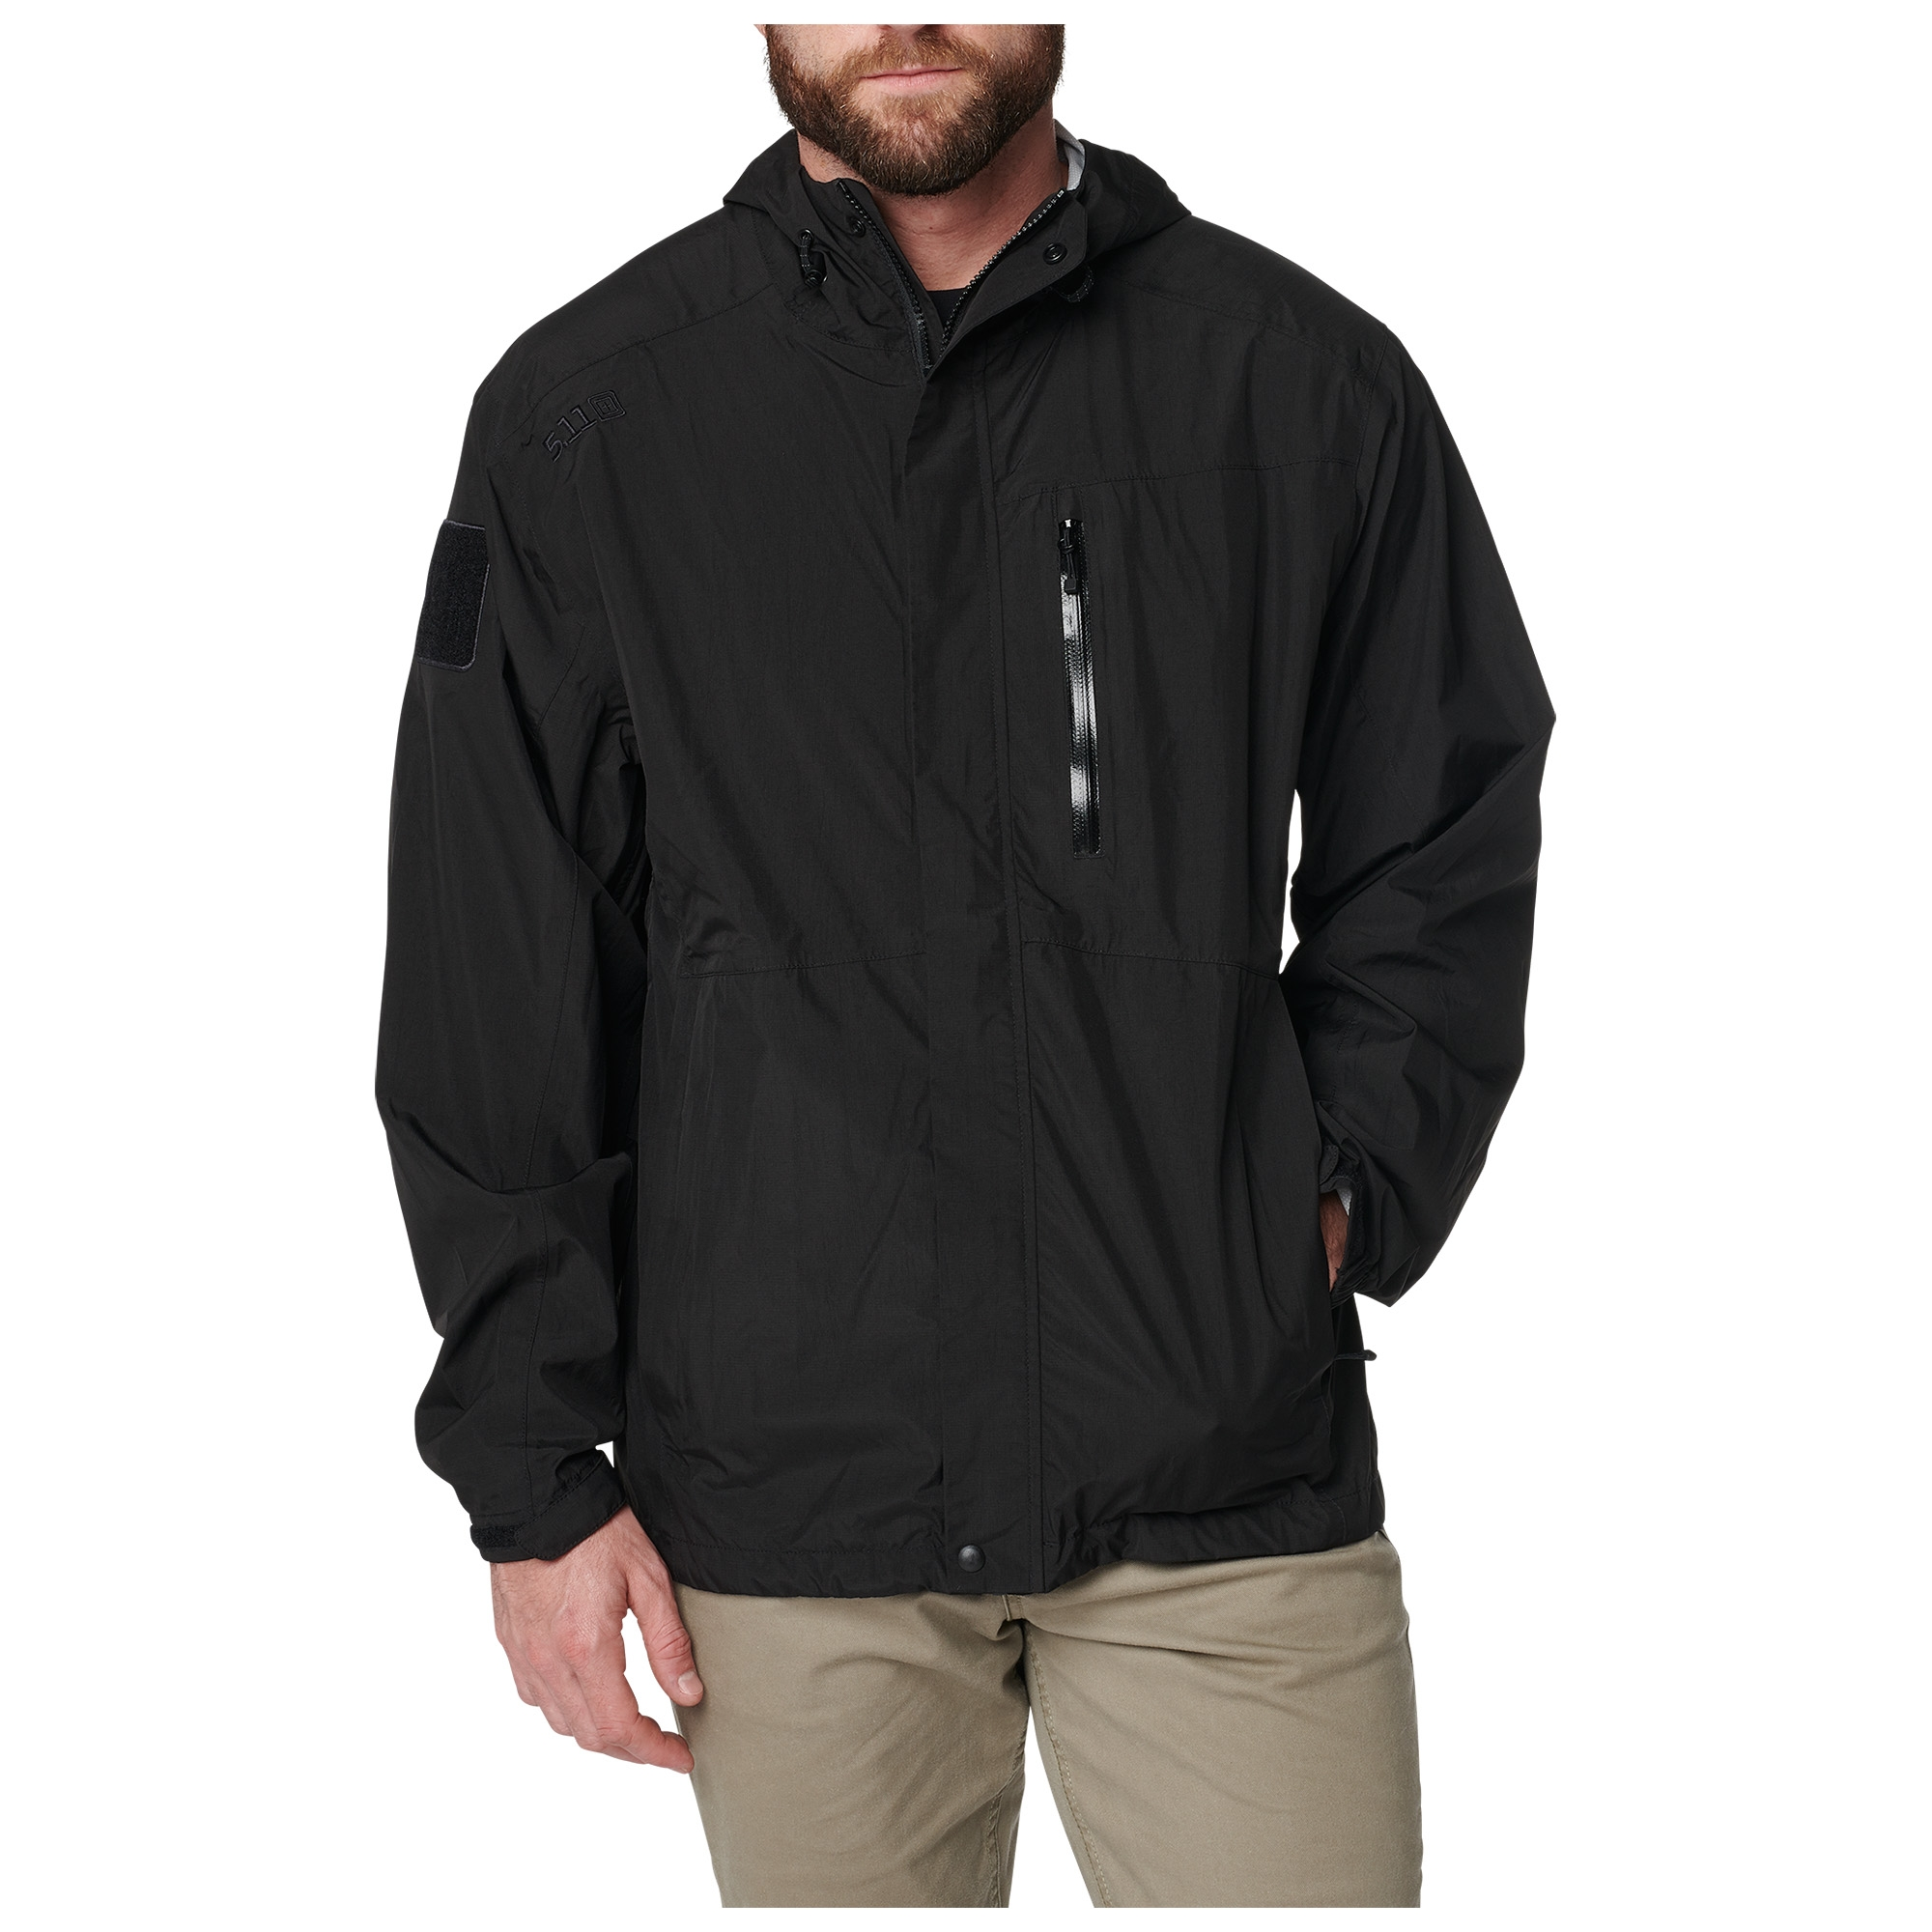 5.11 Tactical Men's Aurora Shell Jacket (Black)